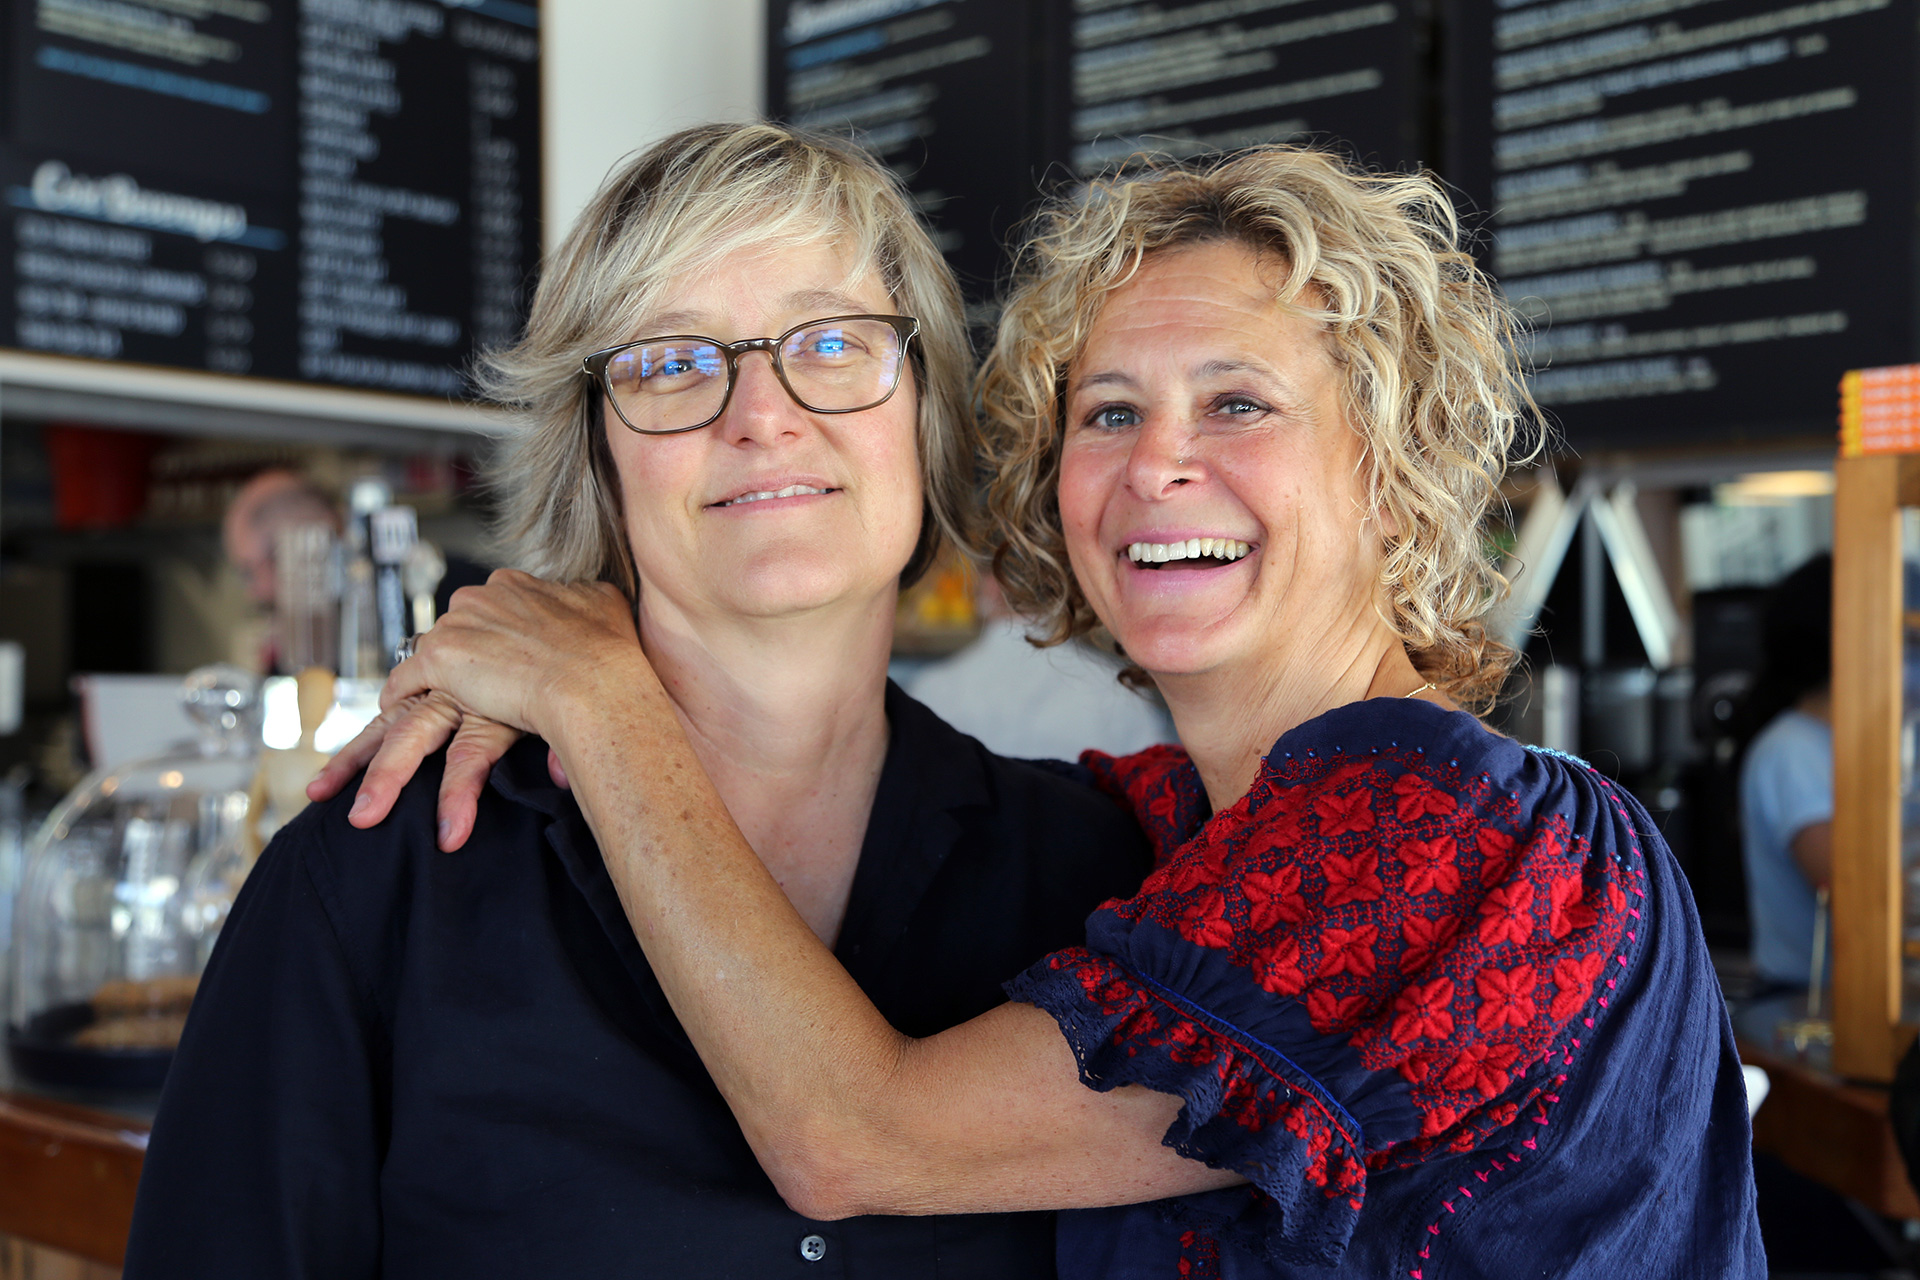 Co-owners Rachel Herbert (L) and Dana Oppenheim